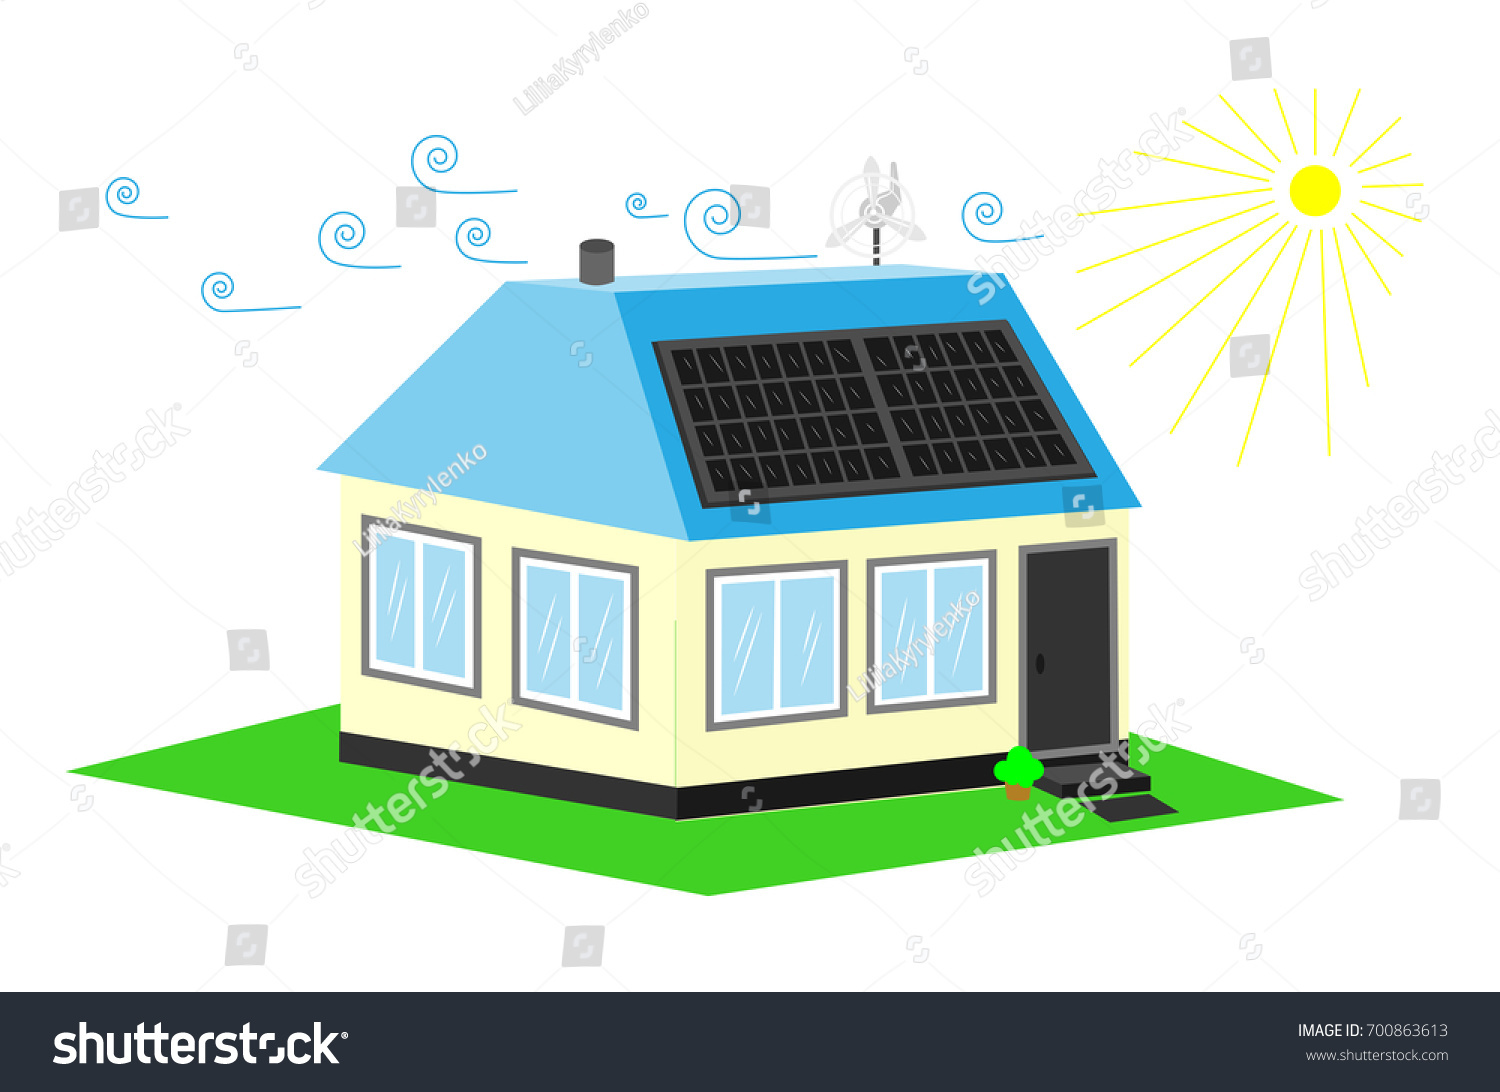 Alternative energy for the home: an overview of non-standard sources of energy modern solutions 6